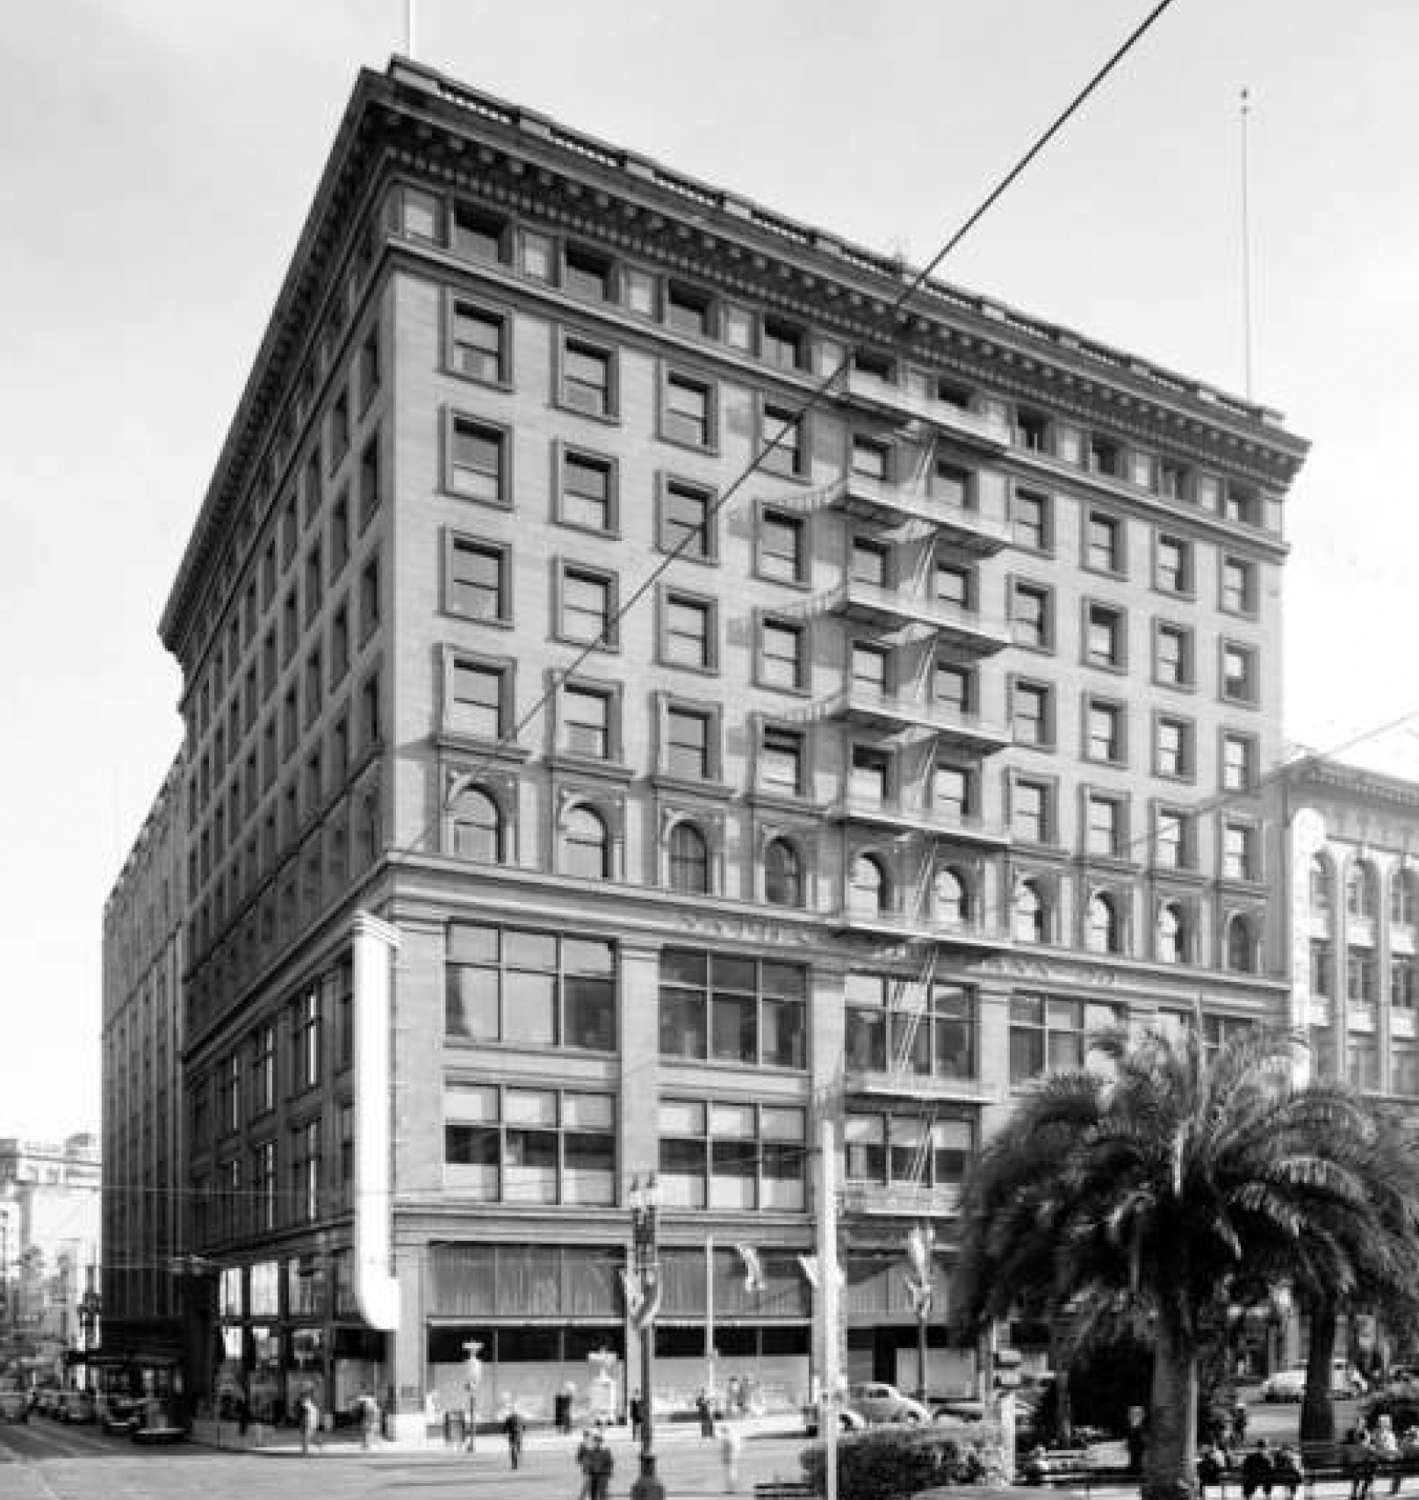 The Butler Building at 233 Geary, image via Handel Architects